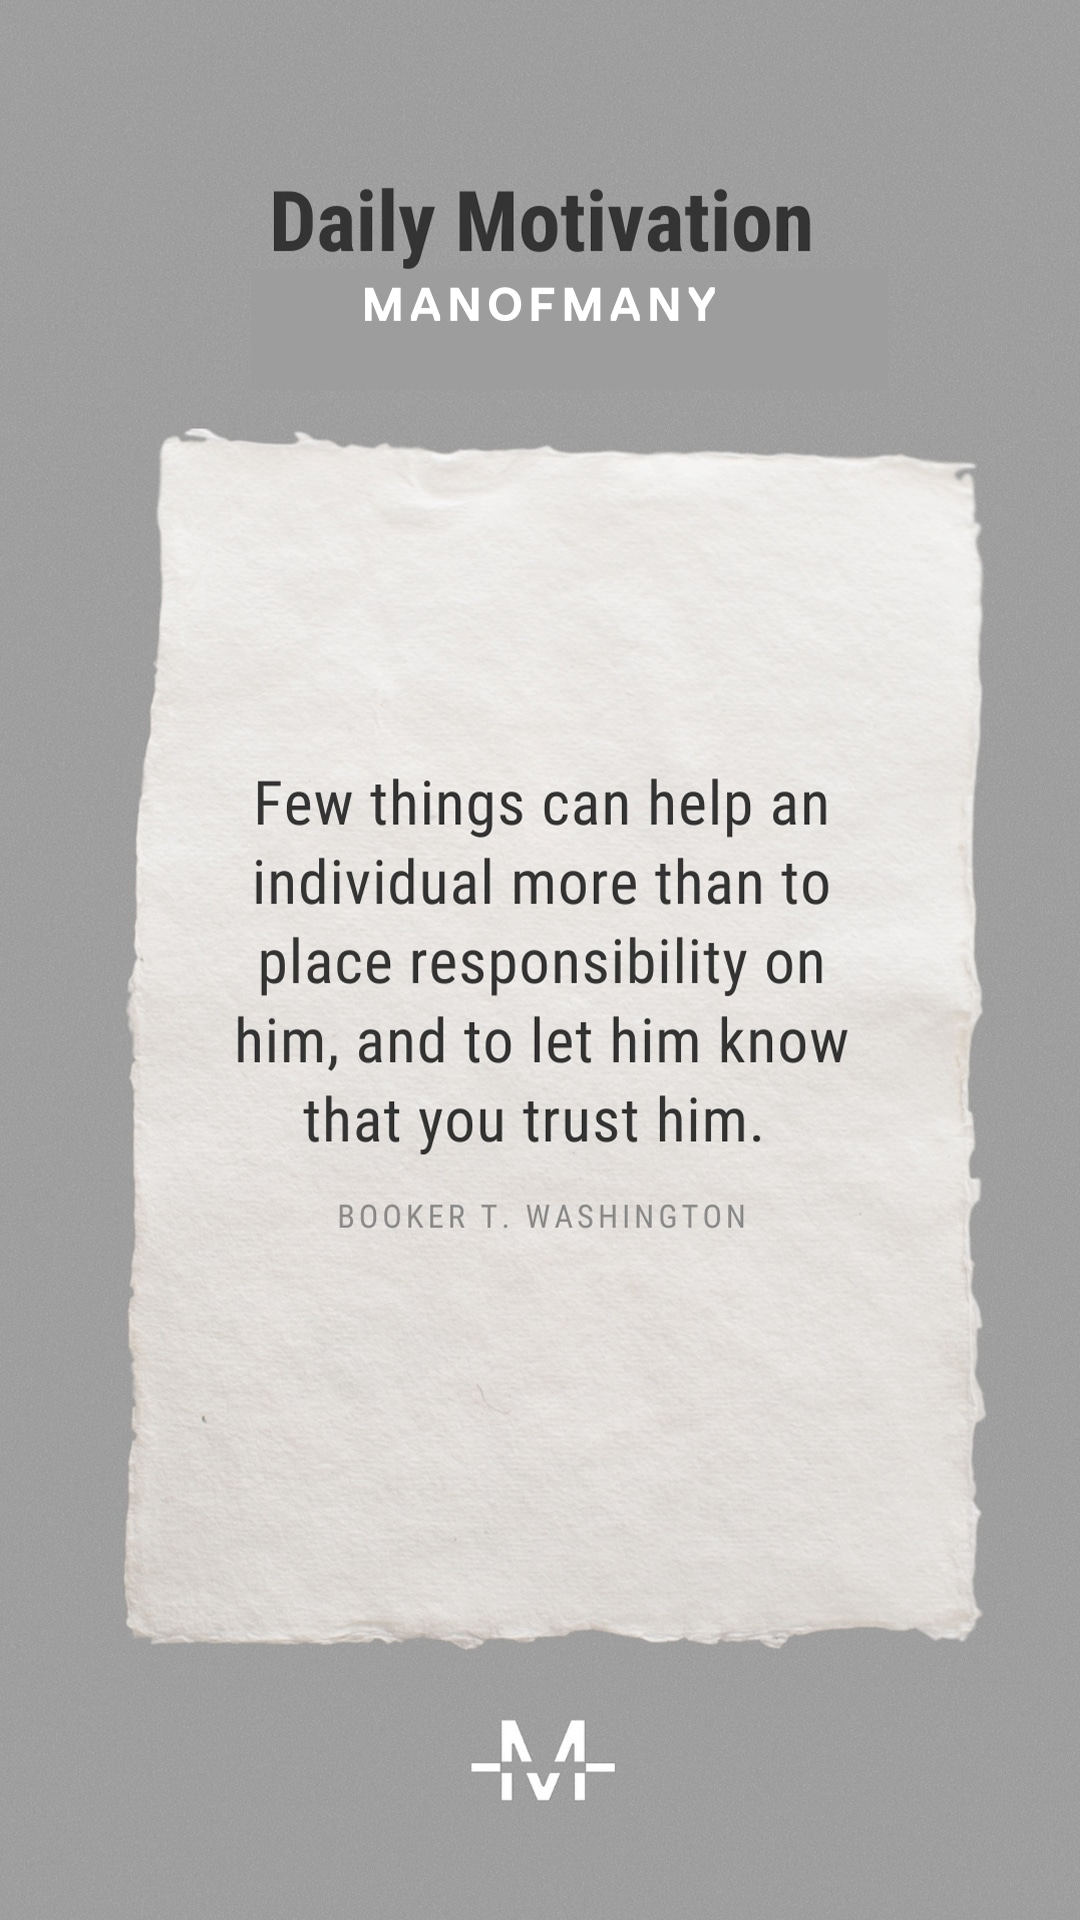 Few things can help an individual more than to place responsibility on him, and to let him know that you trust him. –Booker T. Washington quote